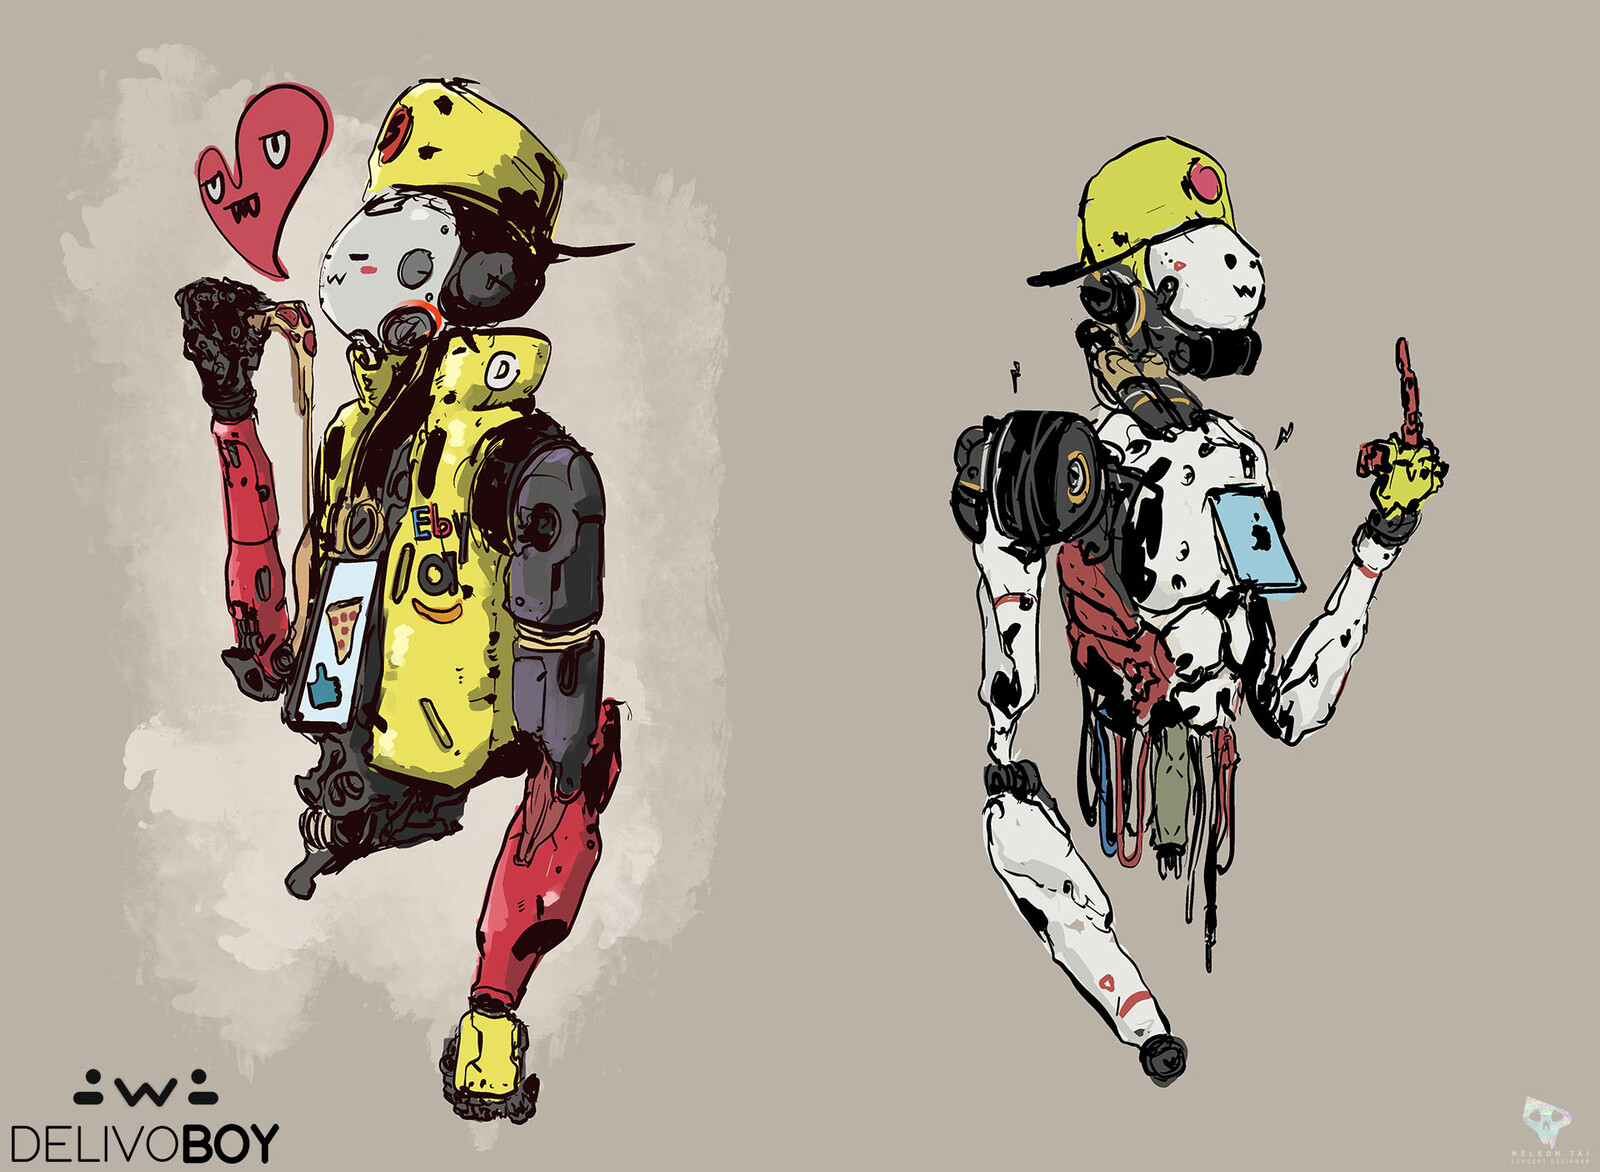 Some more fun DelivoBoy sketches for March of Robots.